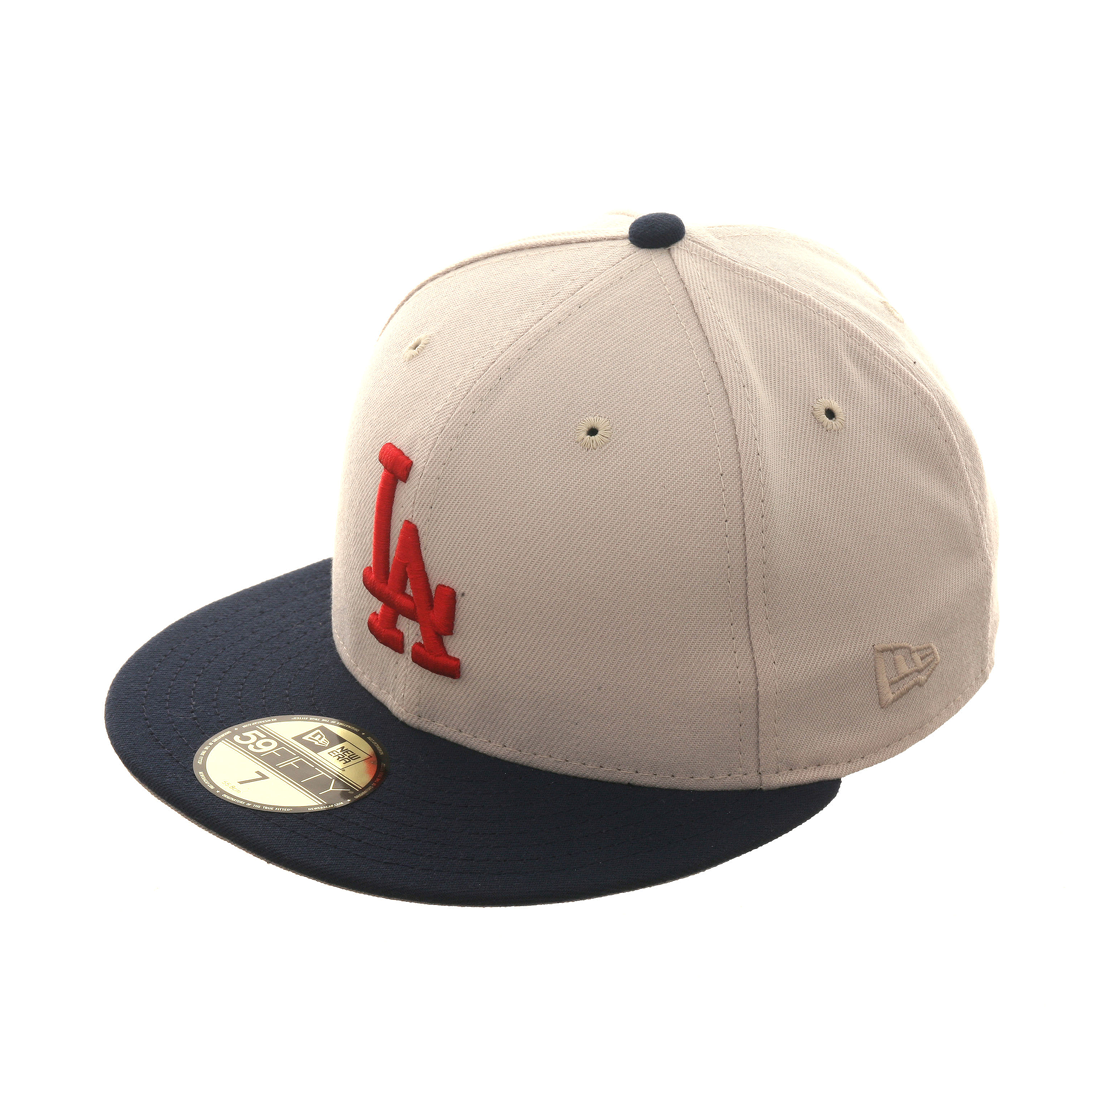 Exclusive New Era 59Fifty Los Angeles Dodgers Hat - 2T Stone, Navy, Red